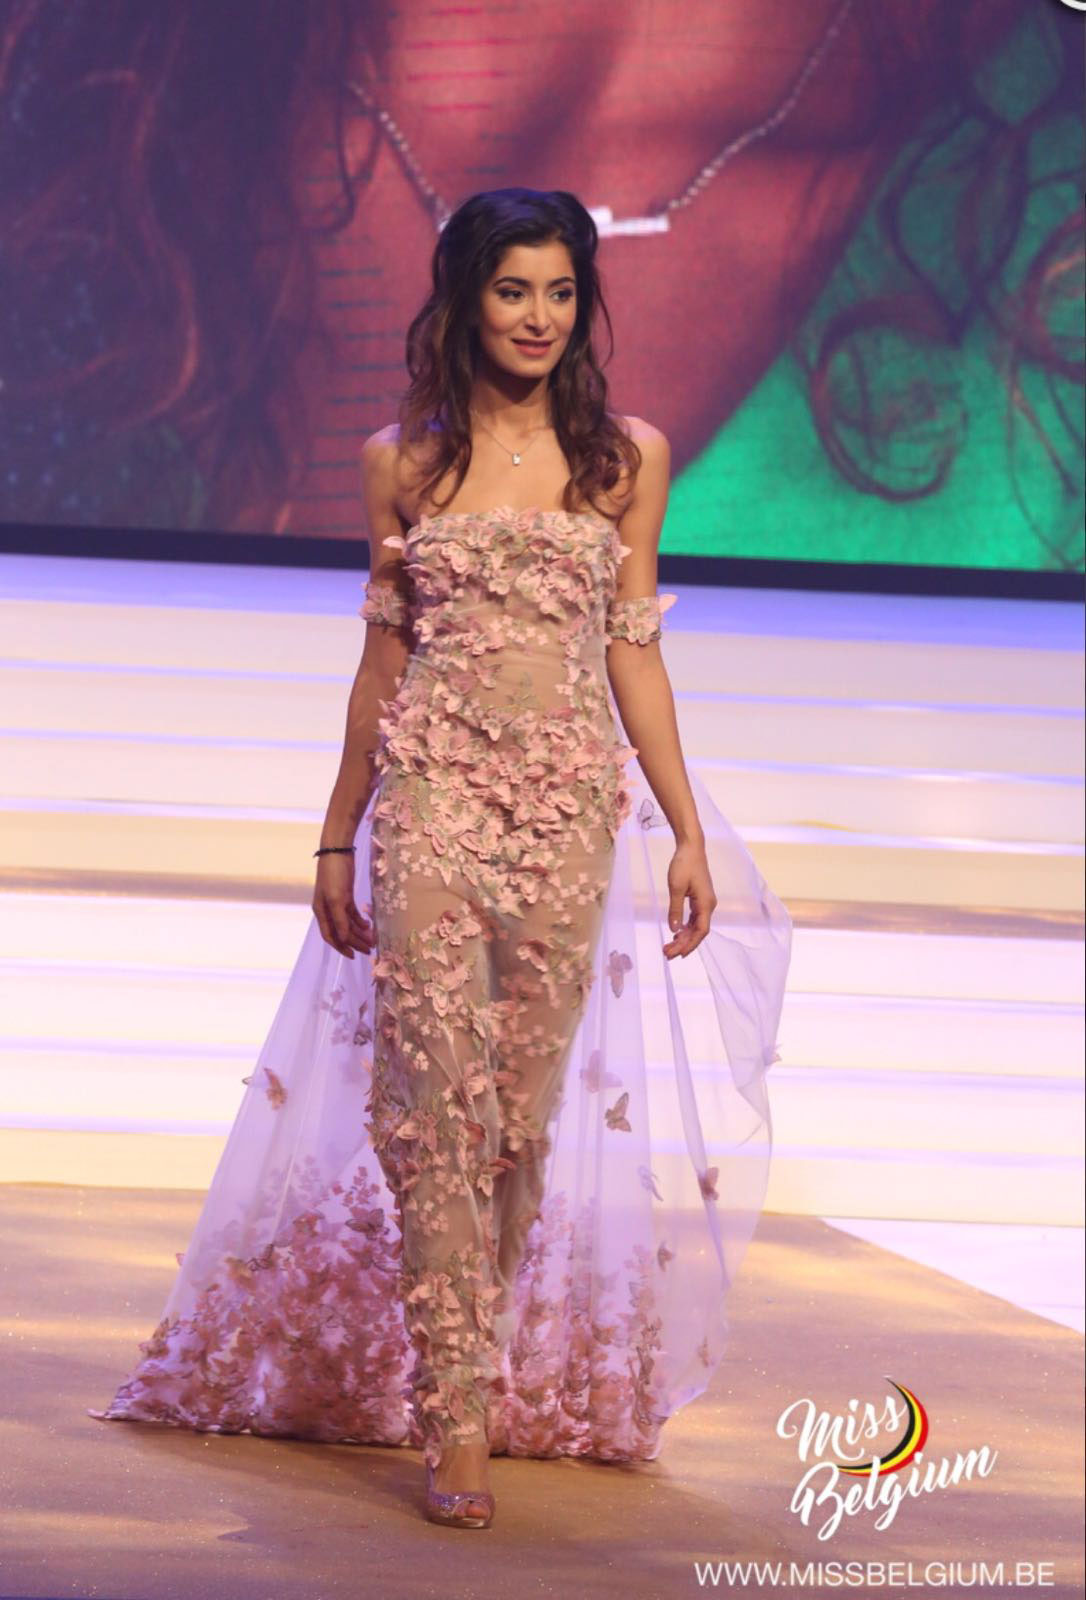 Custom design for Shakila, one of Miss Belgium's finalists in 2017, walking straight.